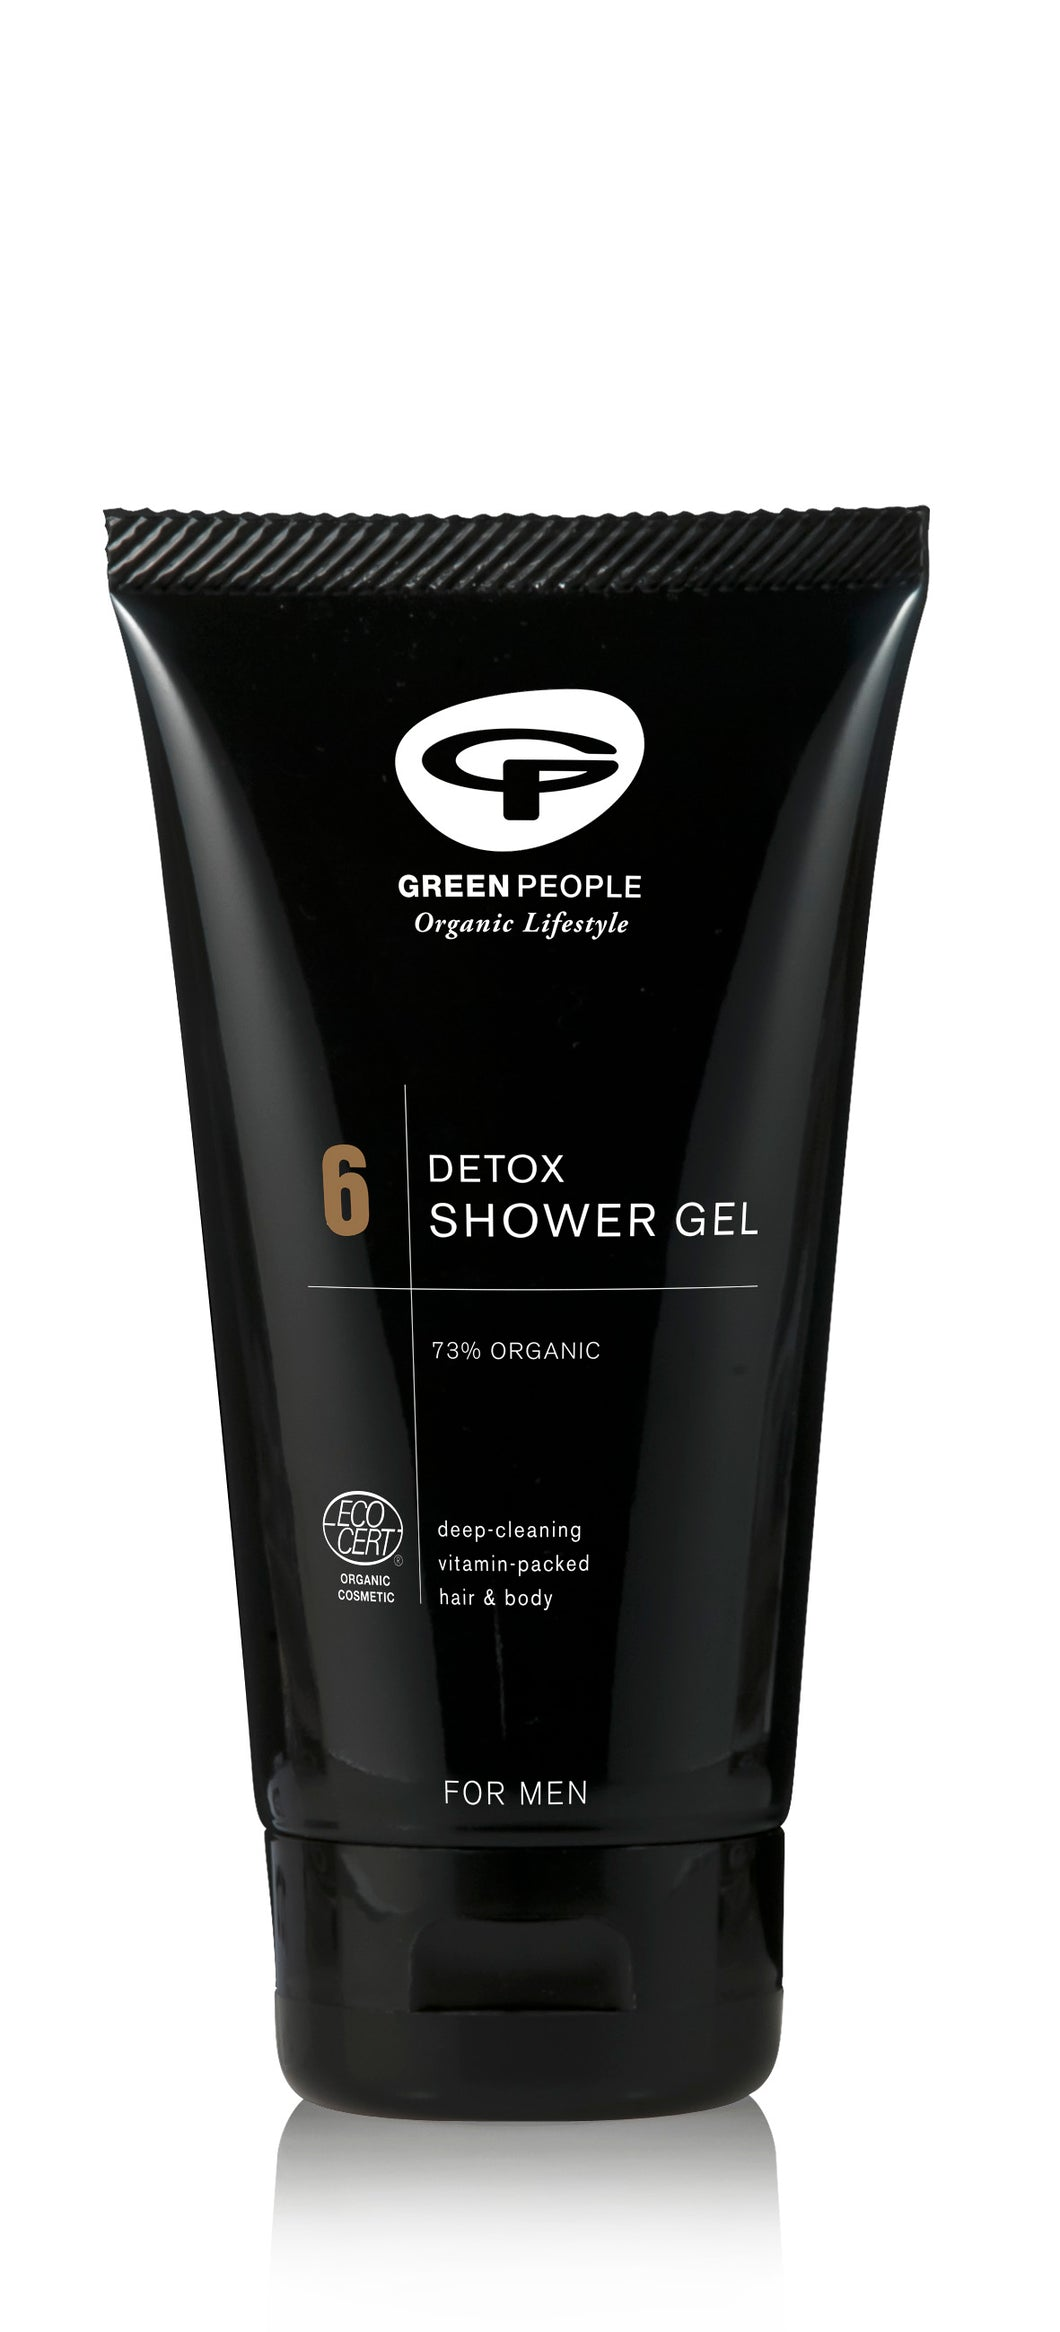 Green People No. 6 Detox Shower Gel